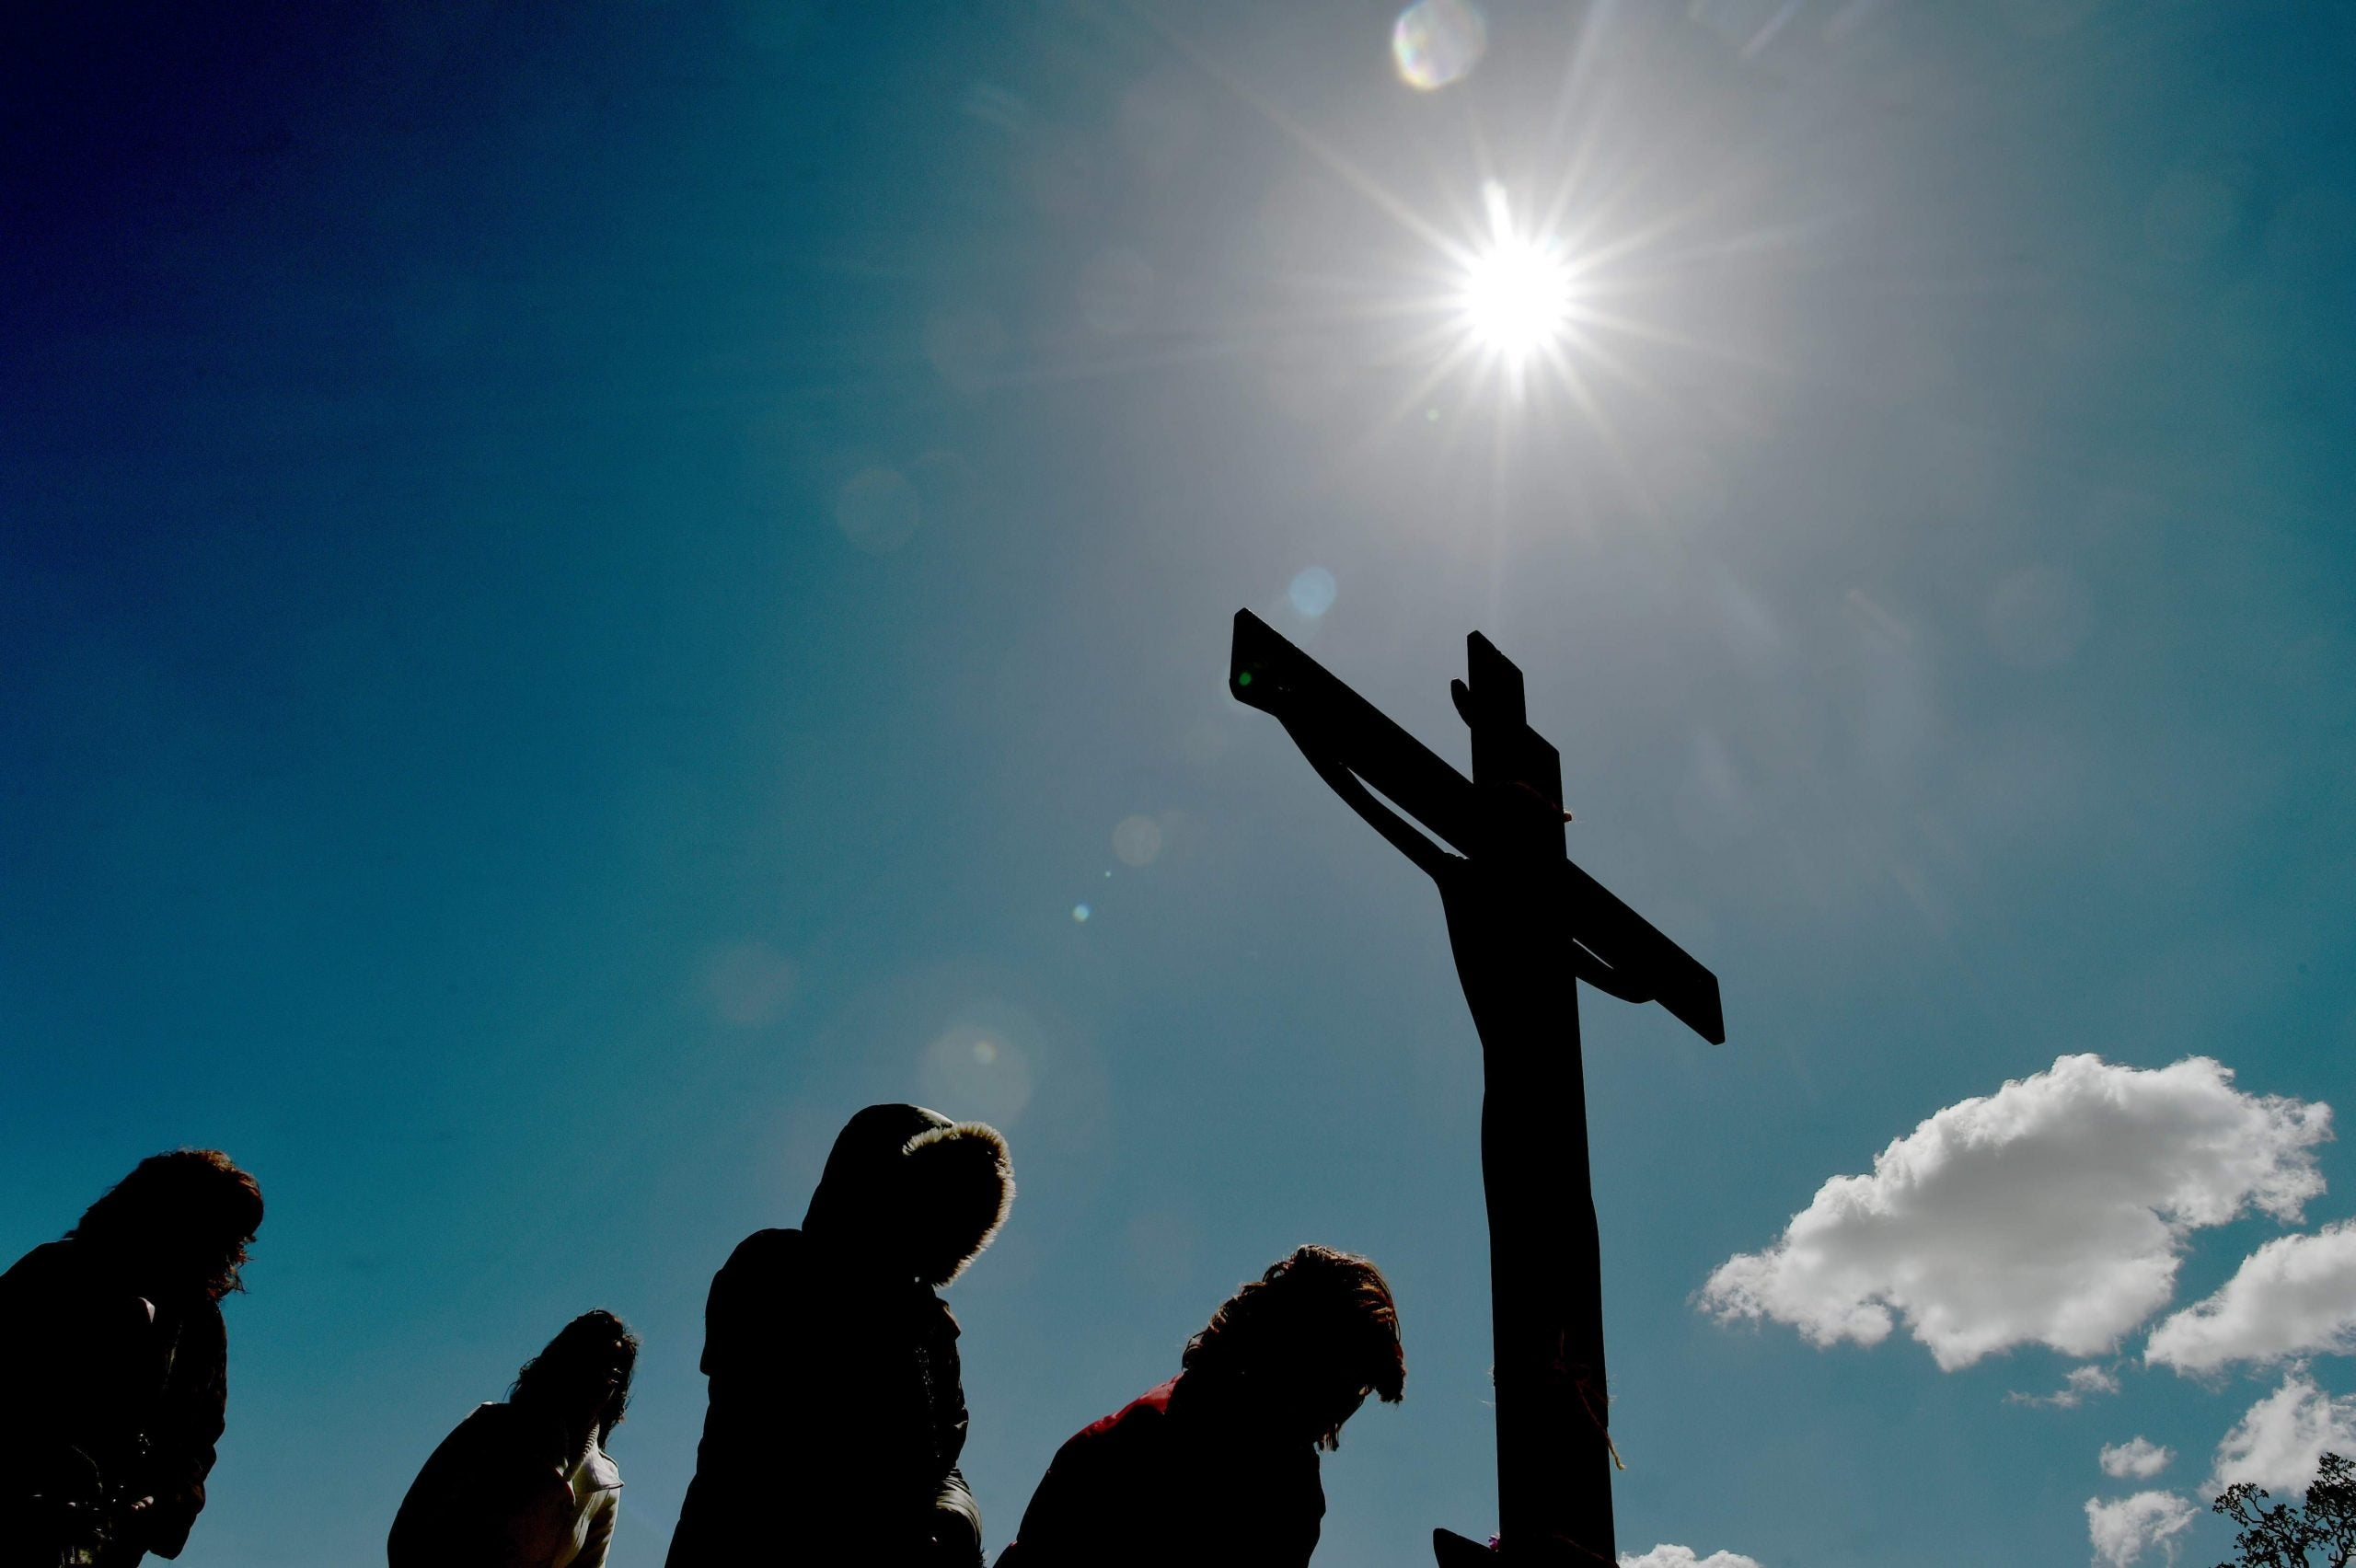 Rev Richard Coles: Brexiteers and Remainers alike could learn from the life of Jesus